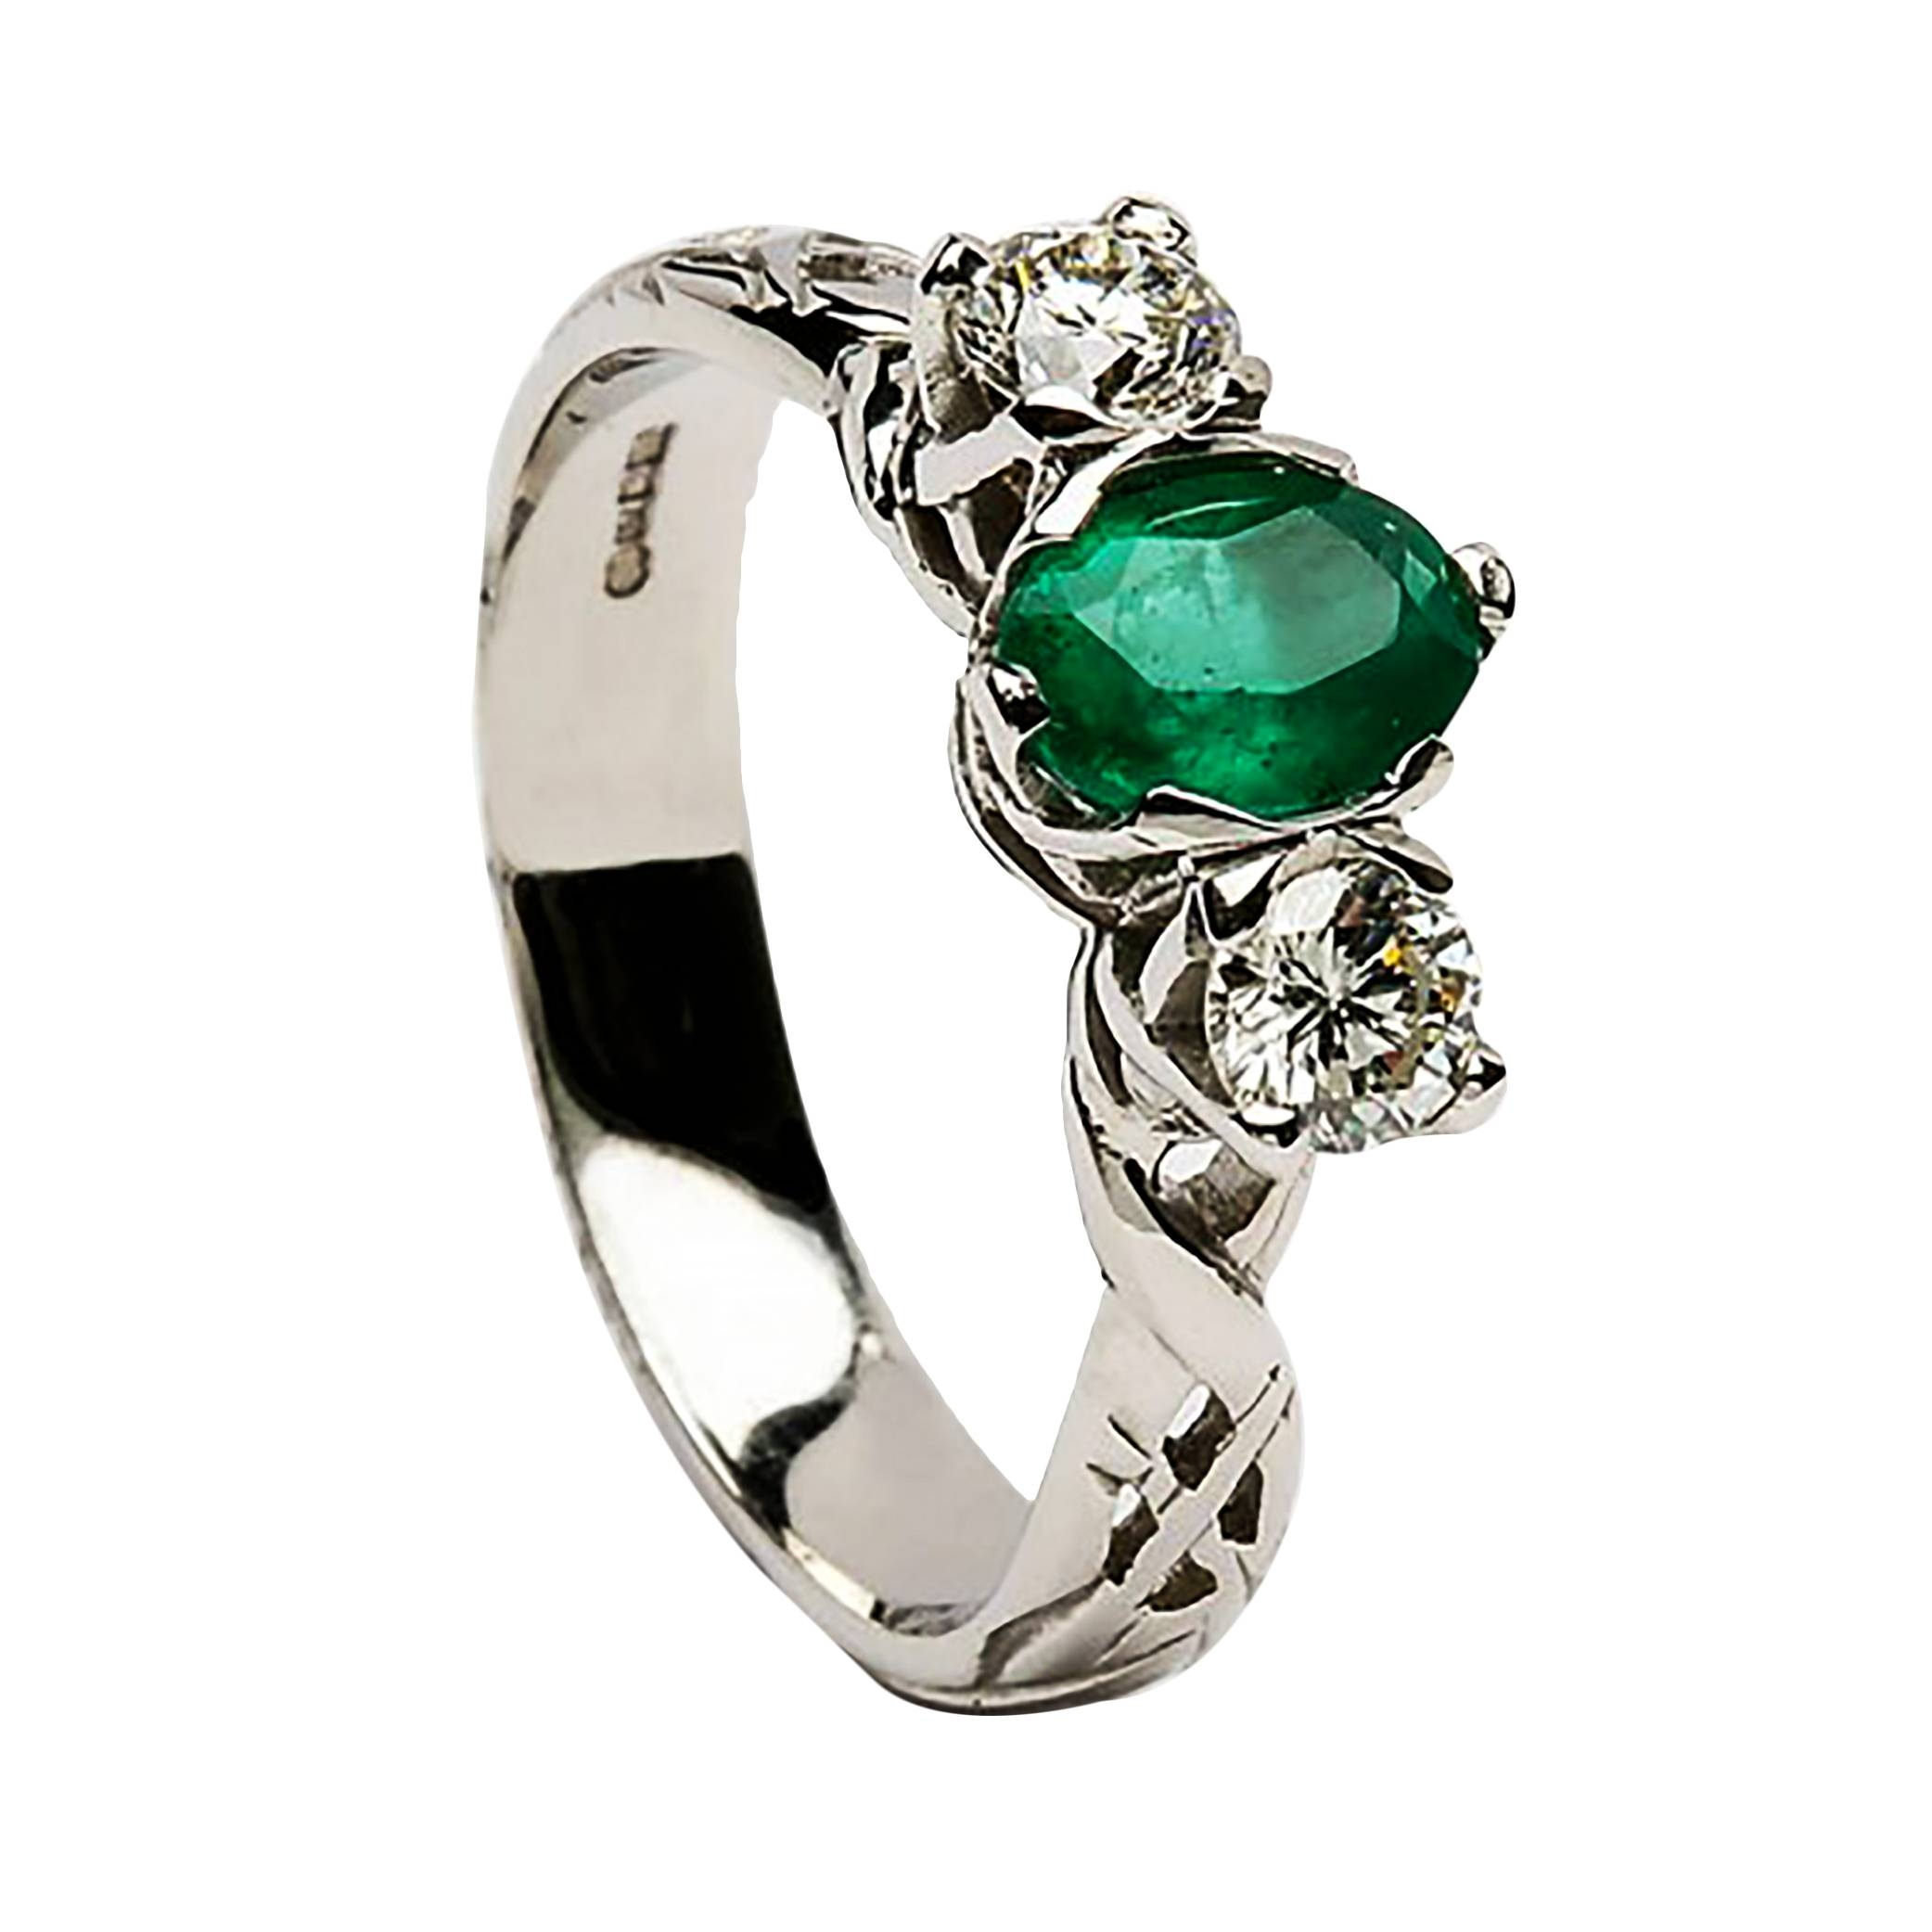 Irish Celtic Engagement Rings | Diamond Rings | Silver Rings Pertaining To Celtic Emerald Engagement Rings (Gallery 5 of 15)